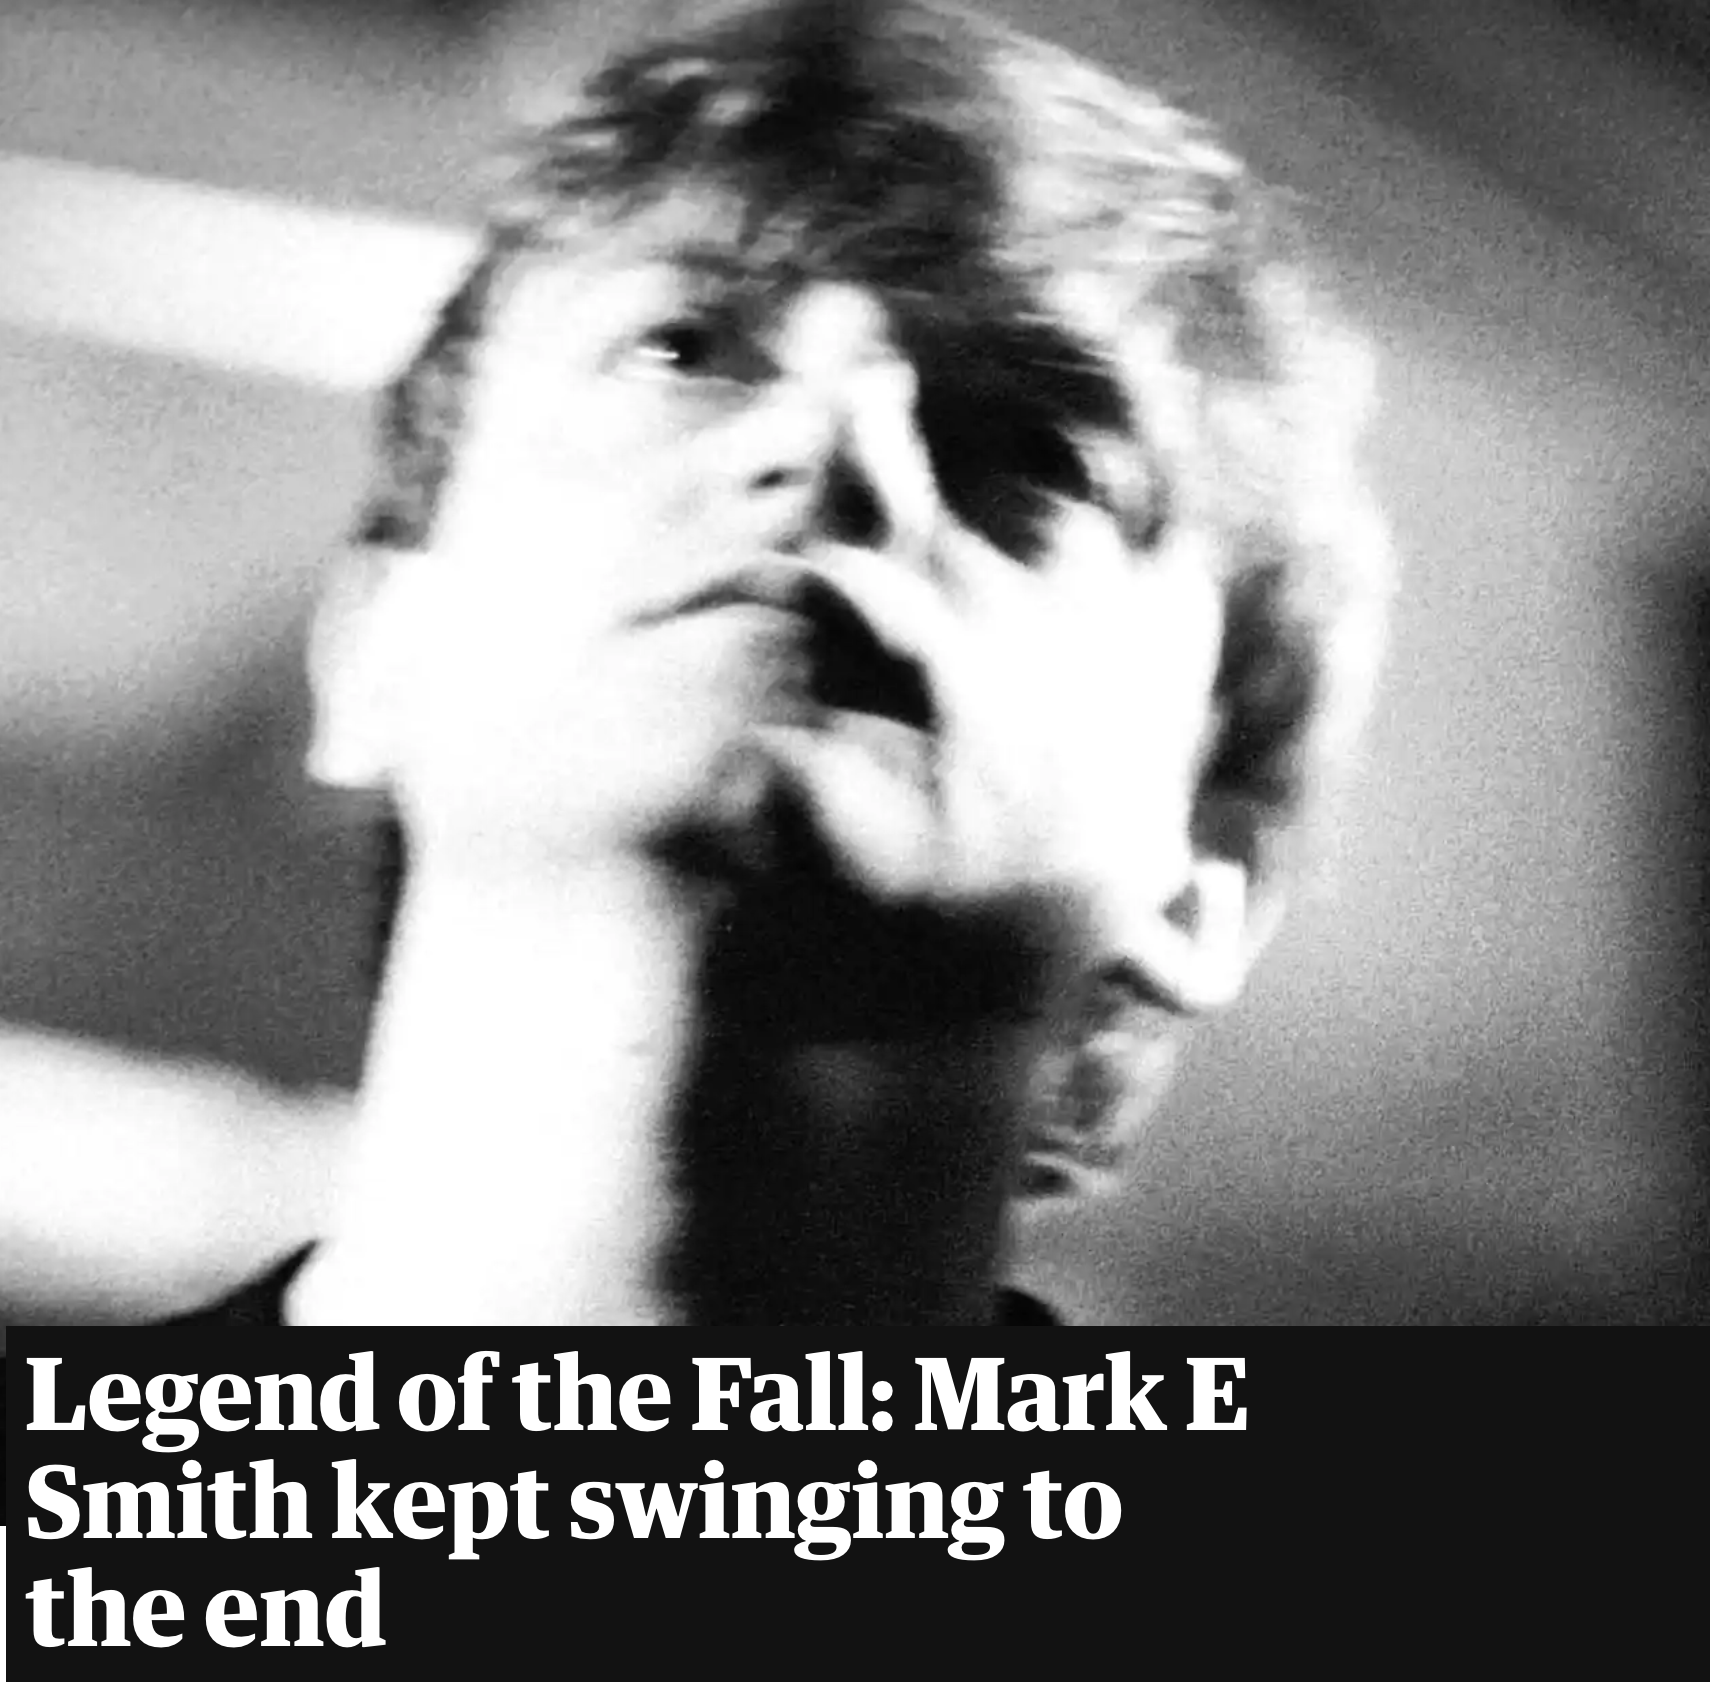 Legend of the Fall: Mark E Smith kept swinging to the end